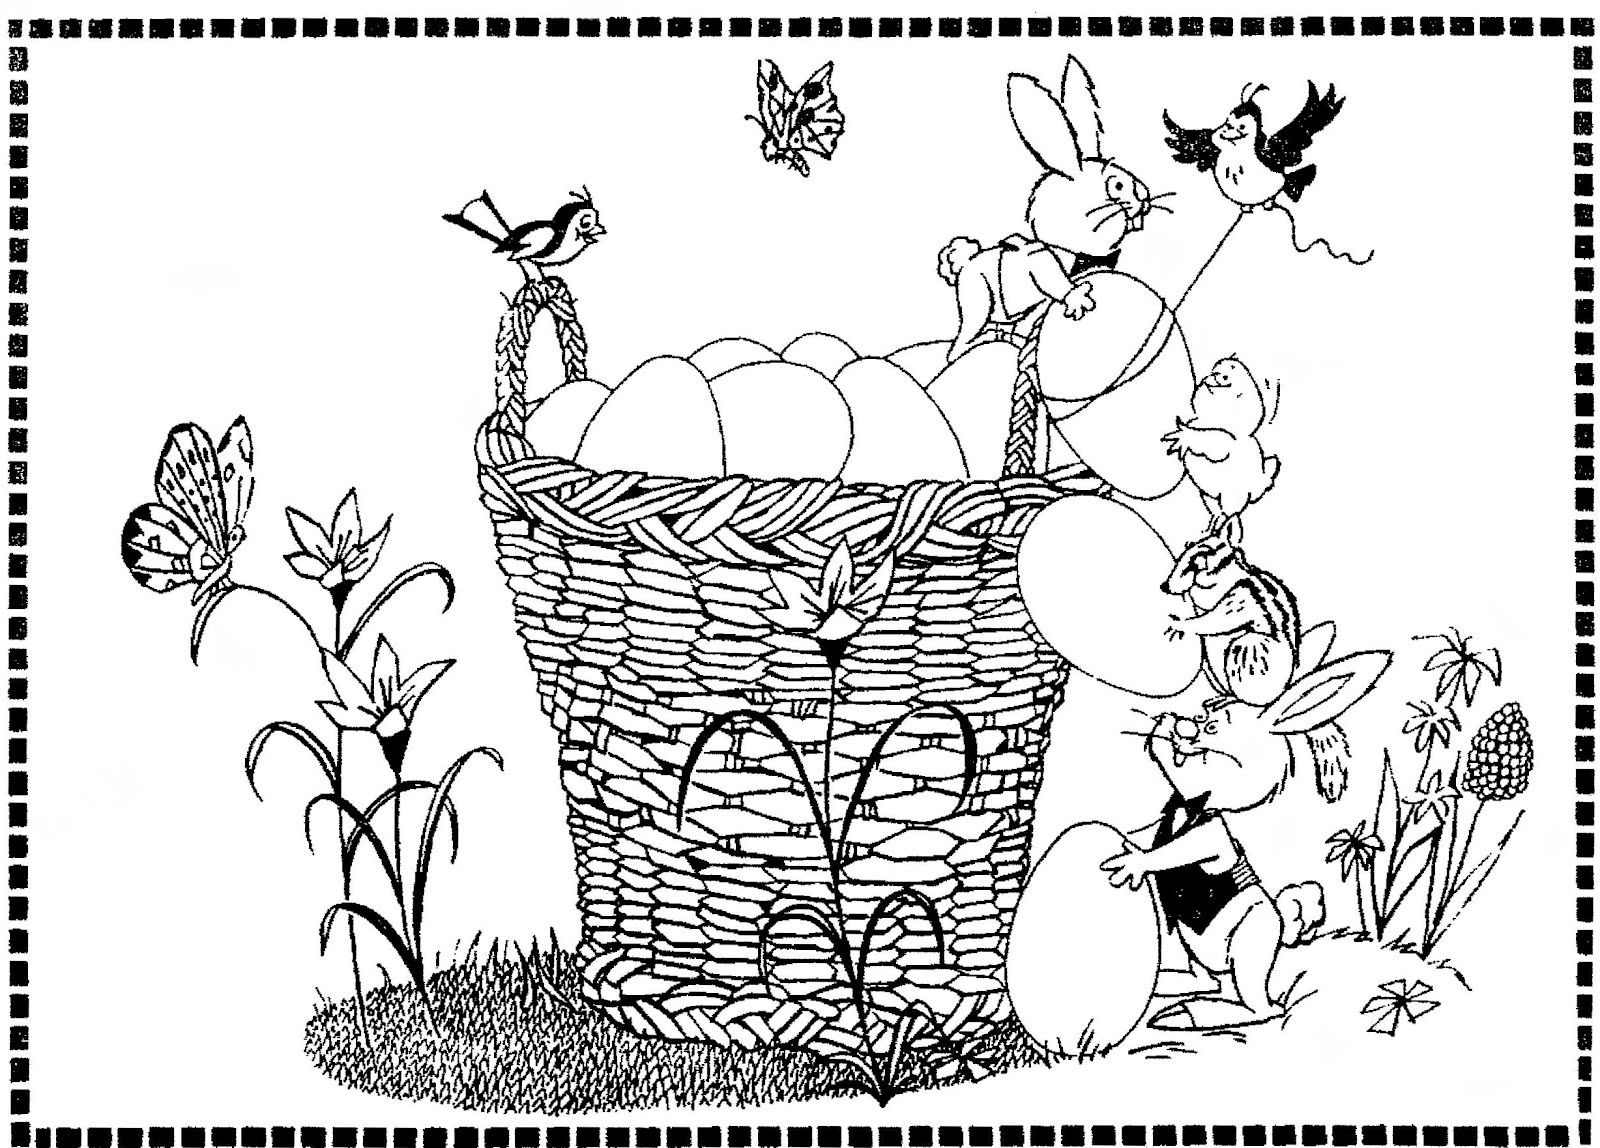 March 28 A Cute Newspaper Easter Coloring Contest